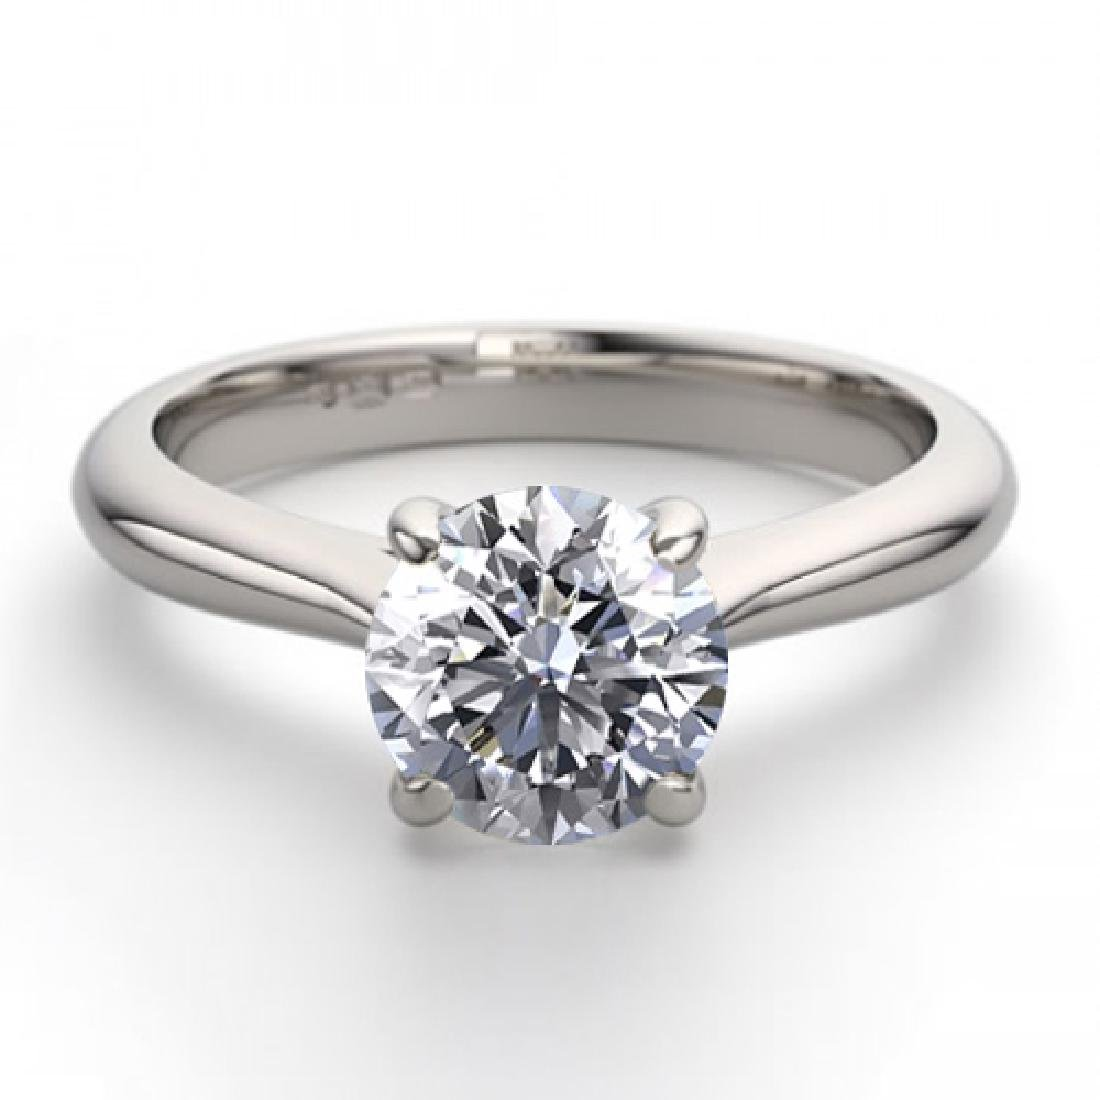 18K White Gold 0.83 ctw Natural Diamond Solitaire Ring